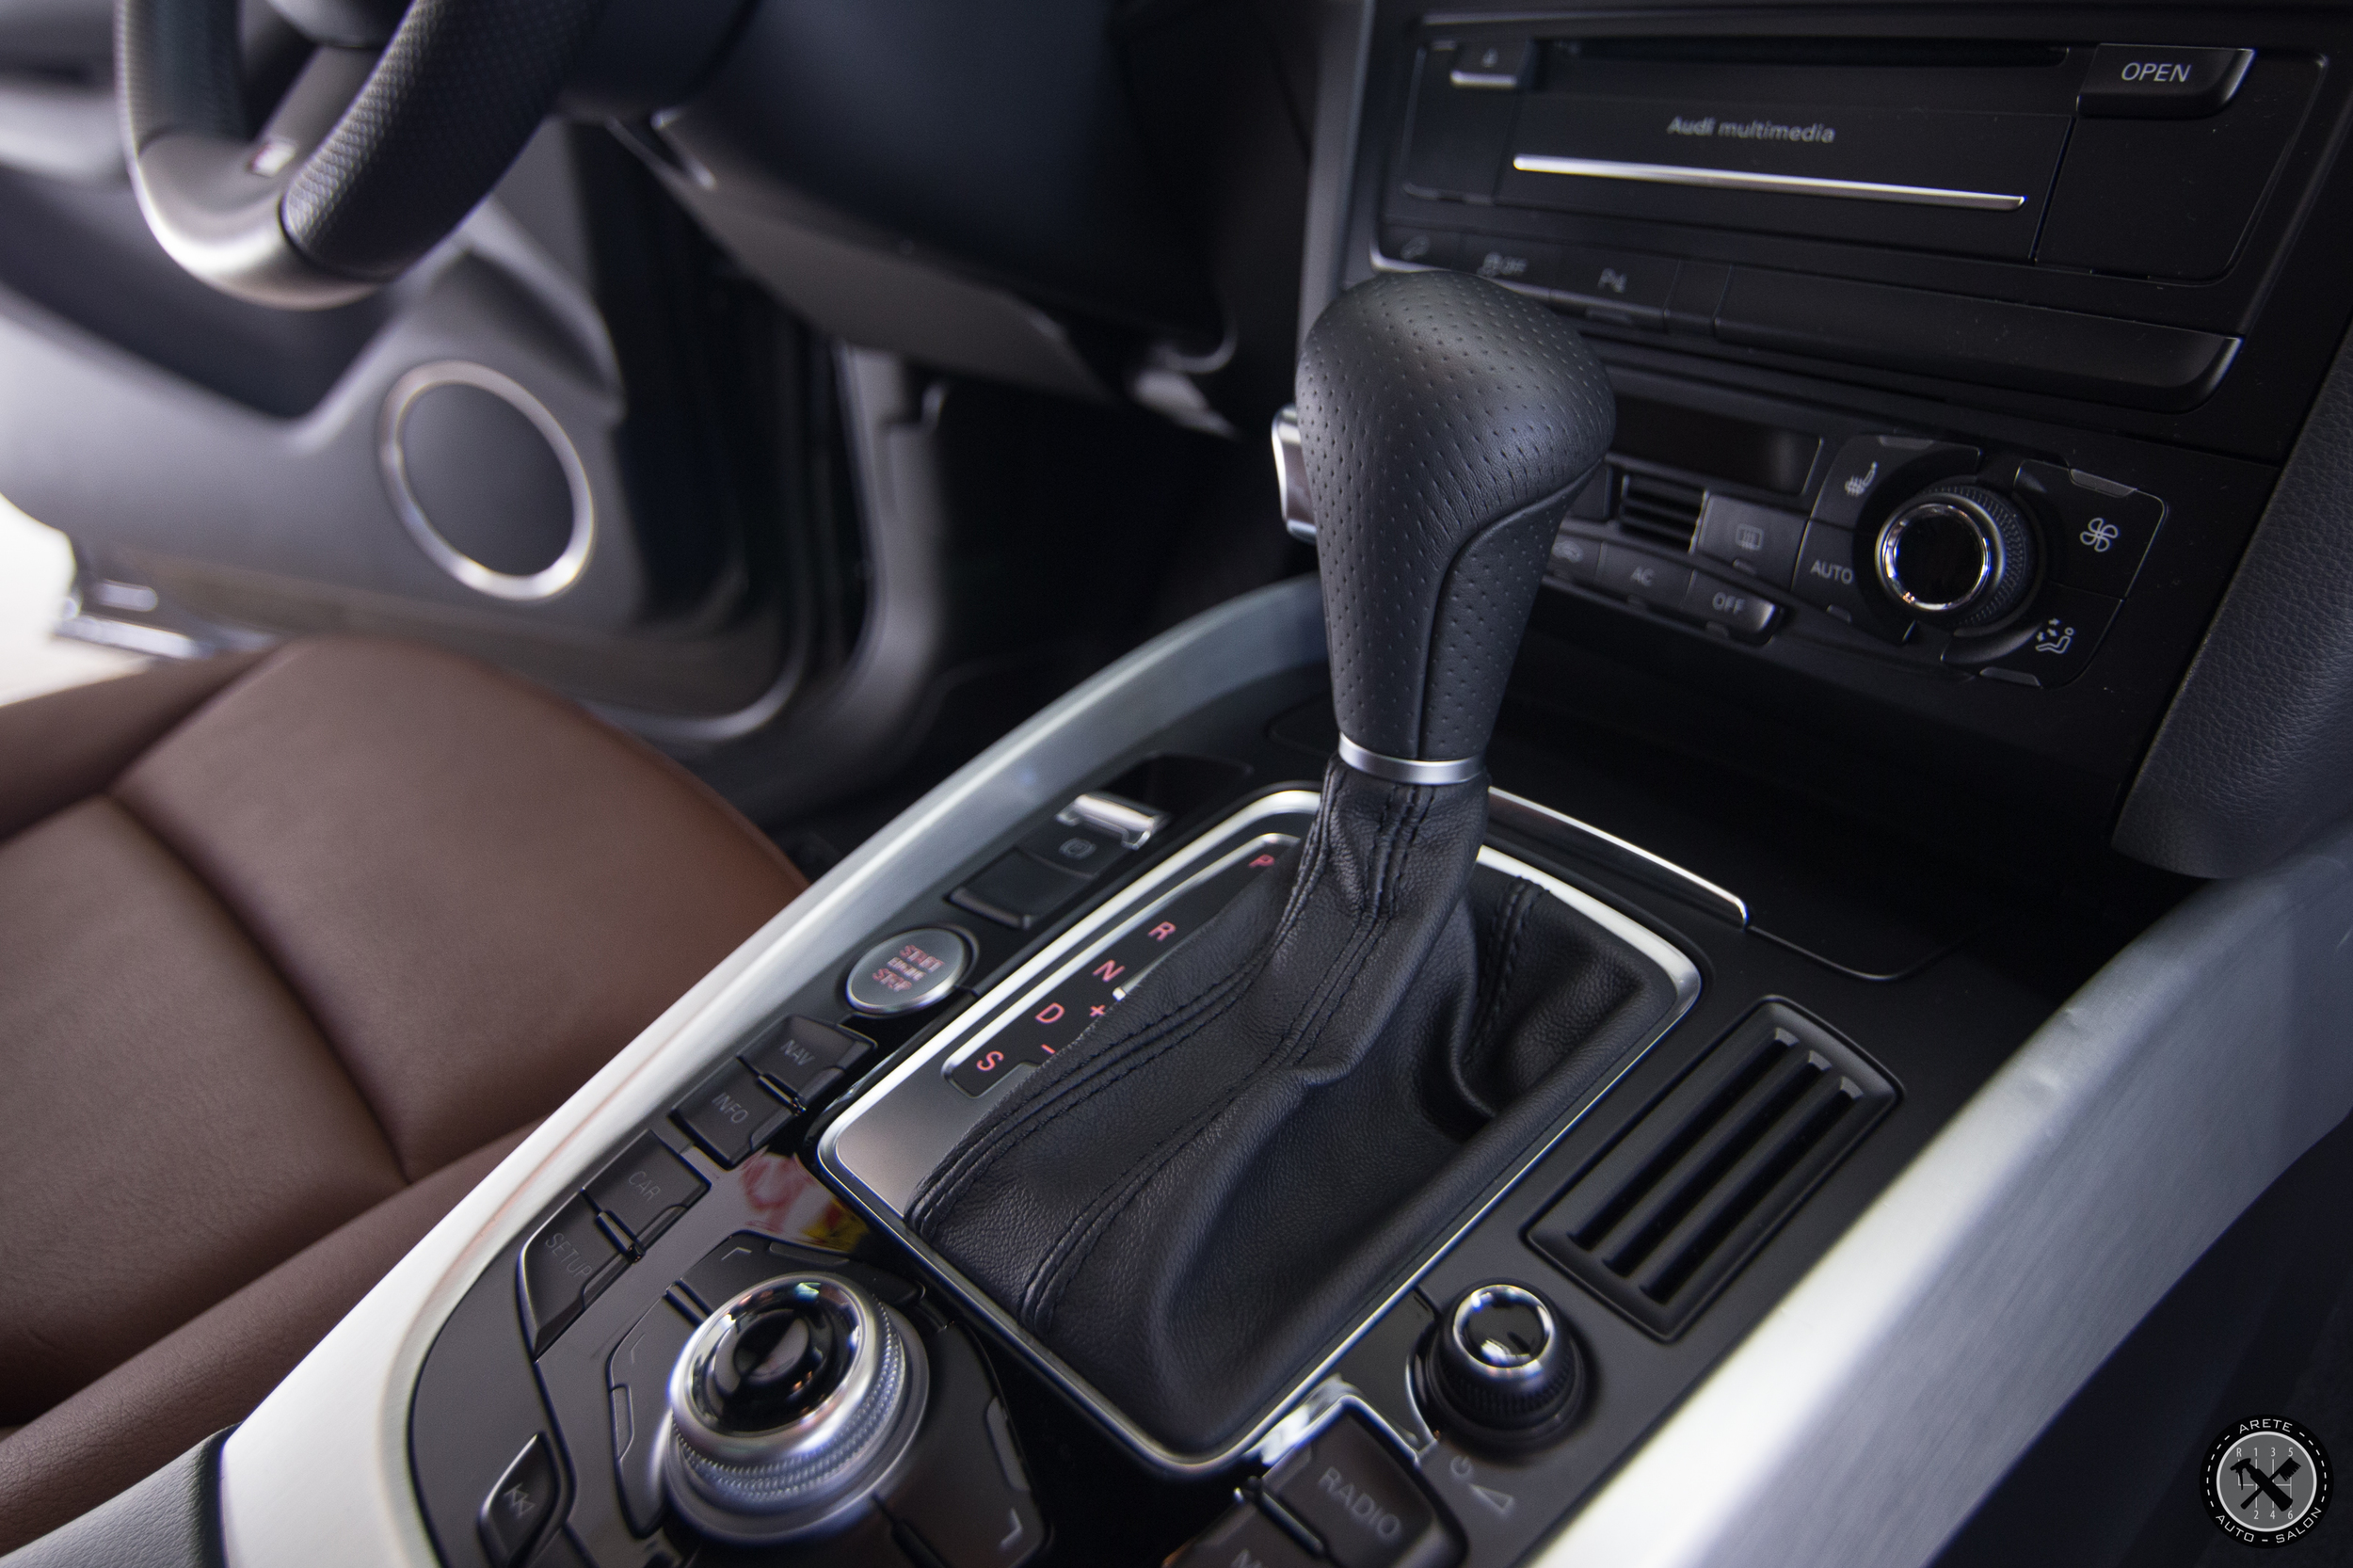 The shift knob and boot were also coated for lasting protection on heavy wear areas.